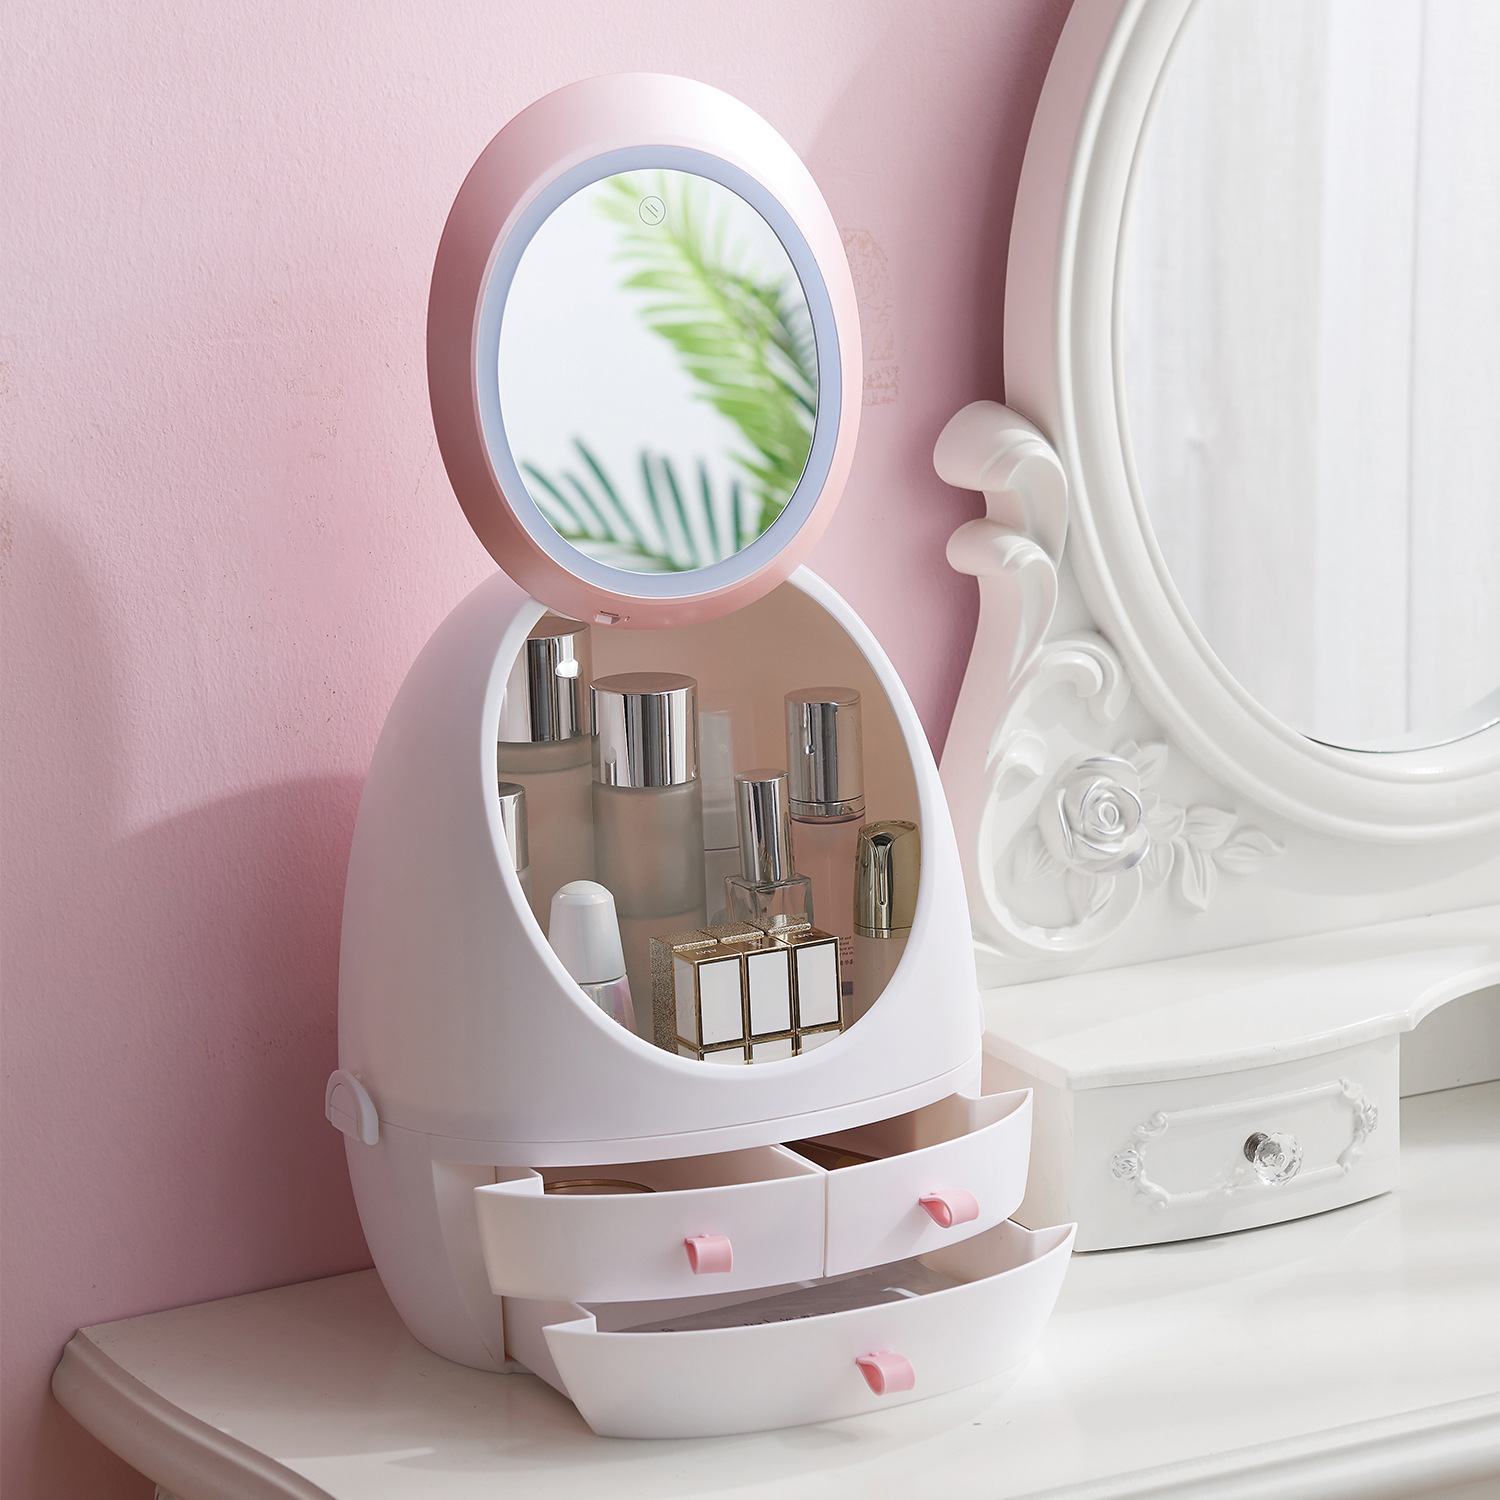 USB Rechargeable Waterproof Mirror LED Light Makeup Organizer Cosmetic Storage Box Portable Jewelry Container Dust Proof Drawer